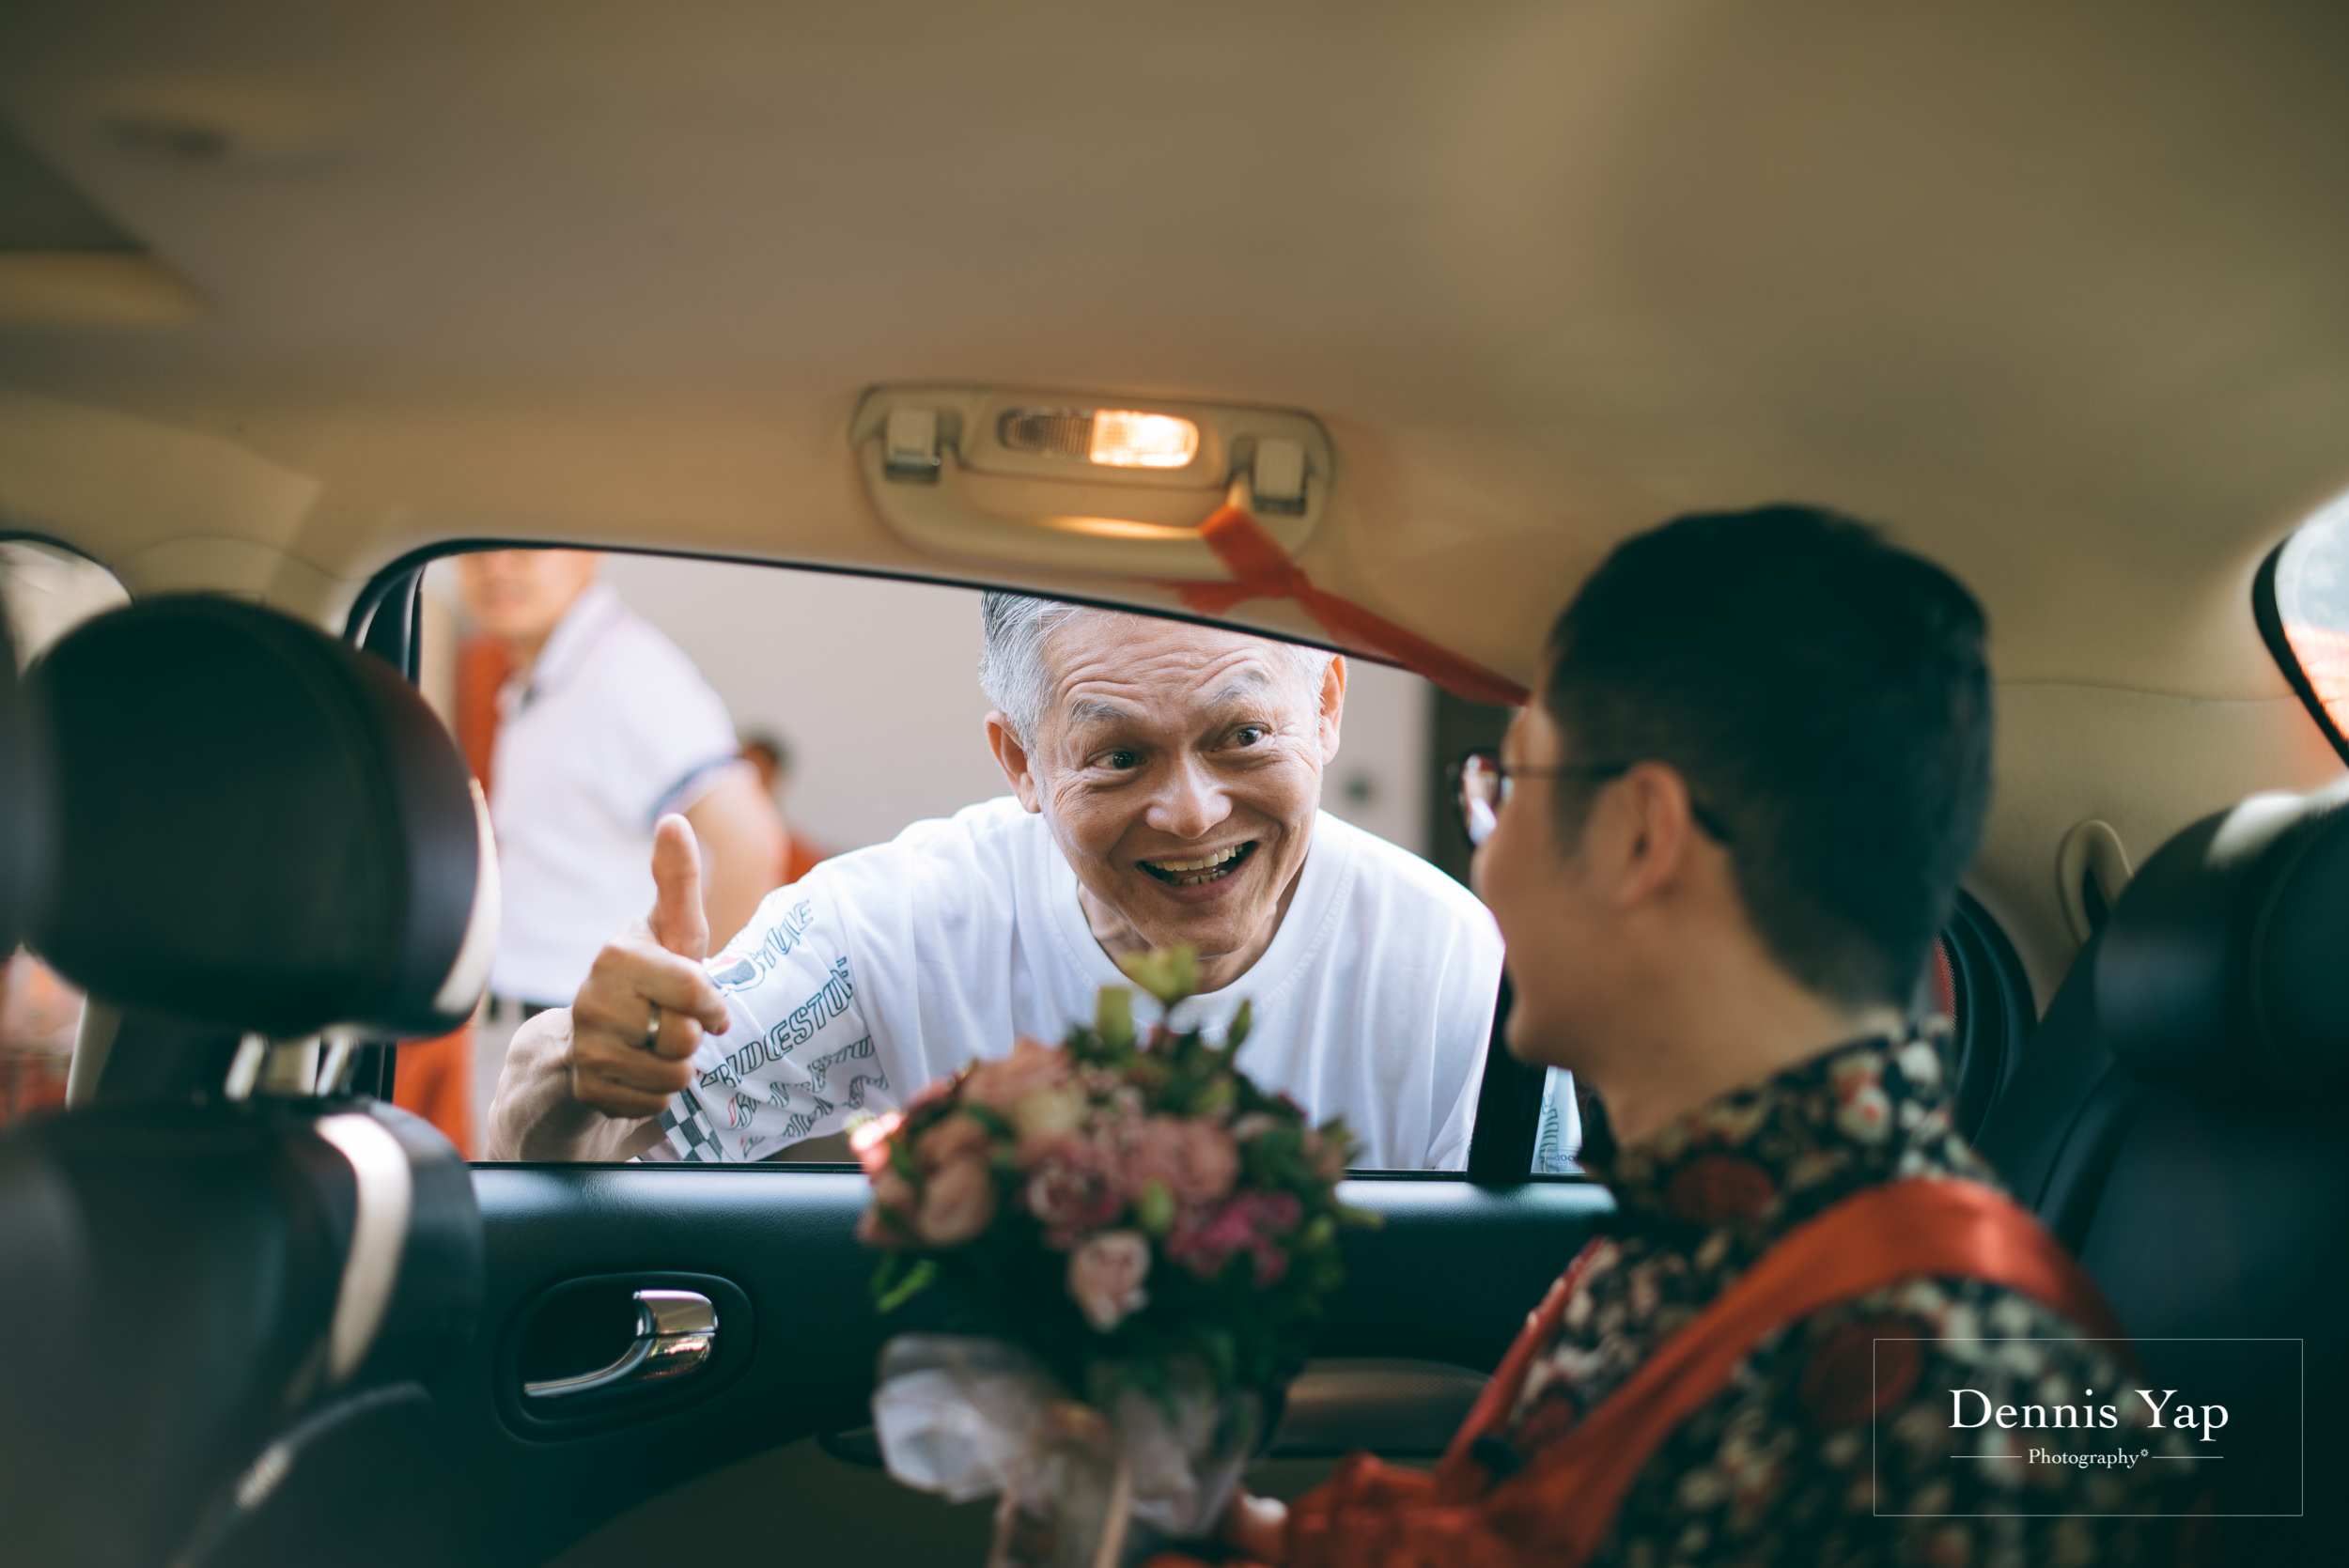 bobby fiona dennis yap photography malaysia wedding photographer chinese traditional-68.jpg